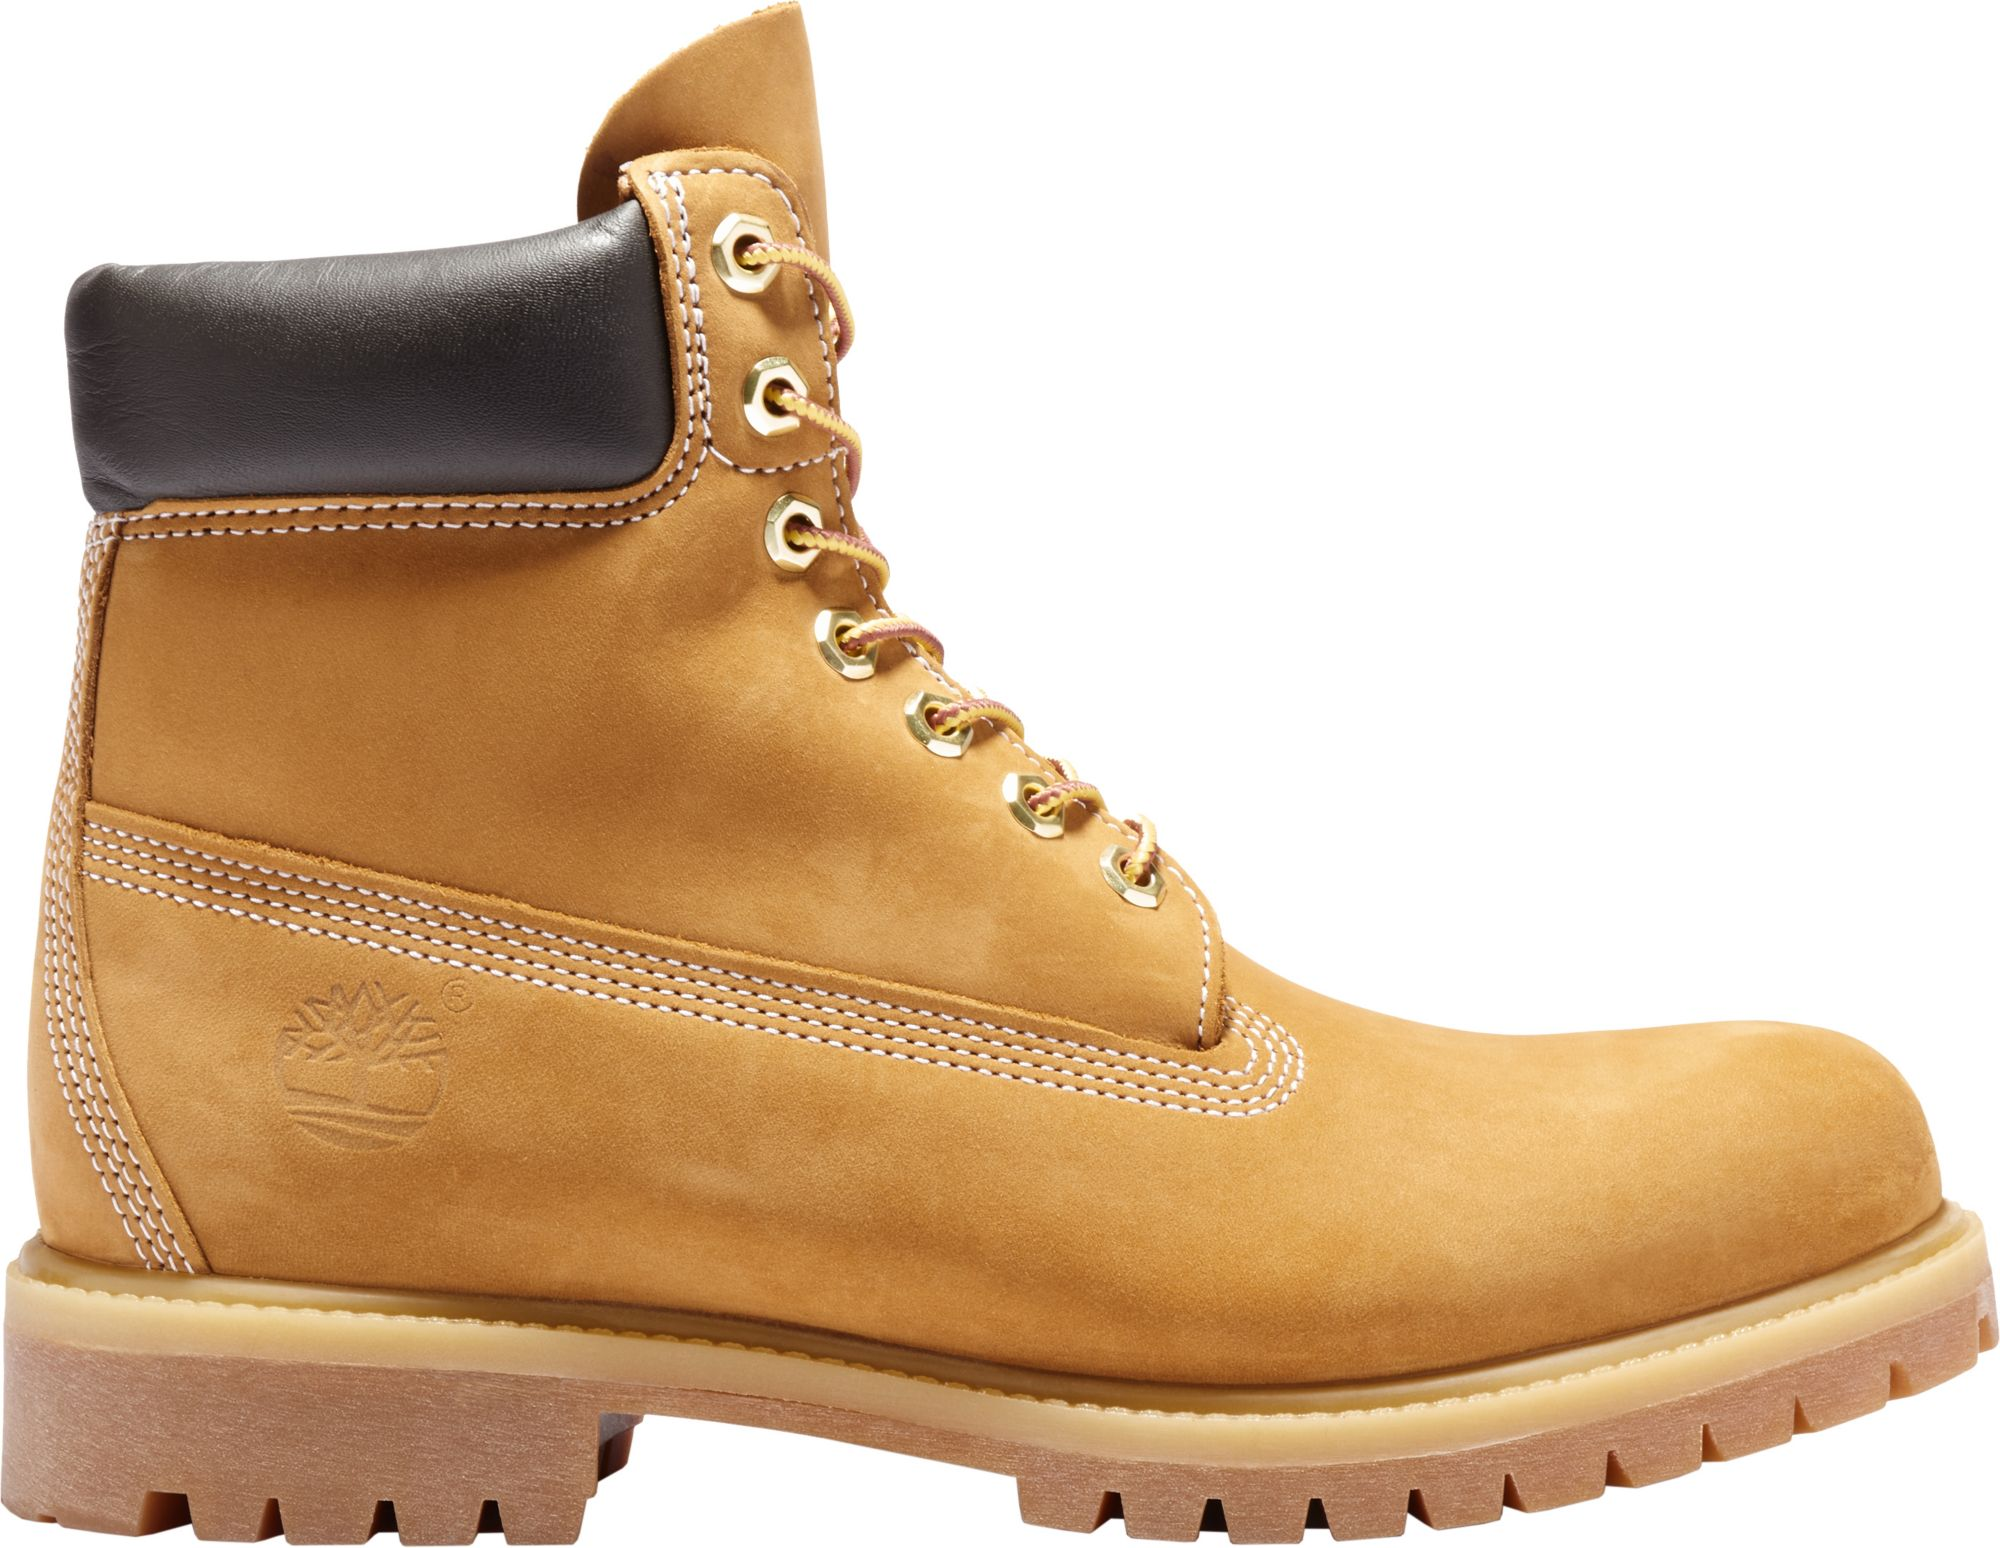 Timberland Mens 6 inch Premium Leather Boots Mens Footwear Shop Mens Footwear COLOUR-wheat